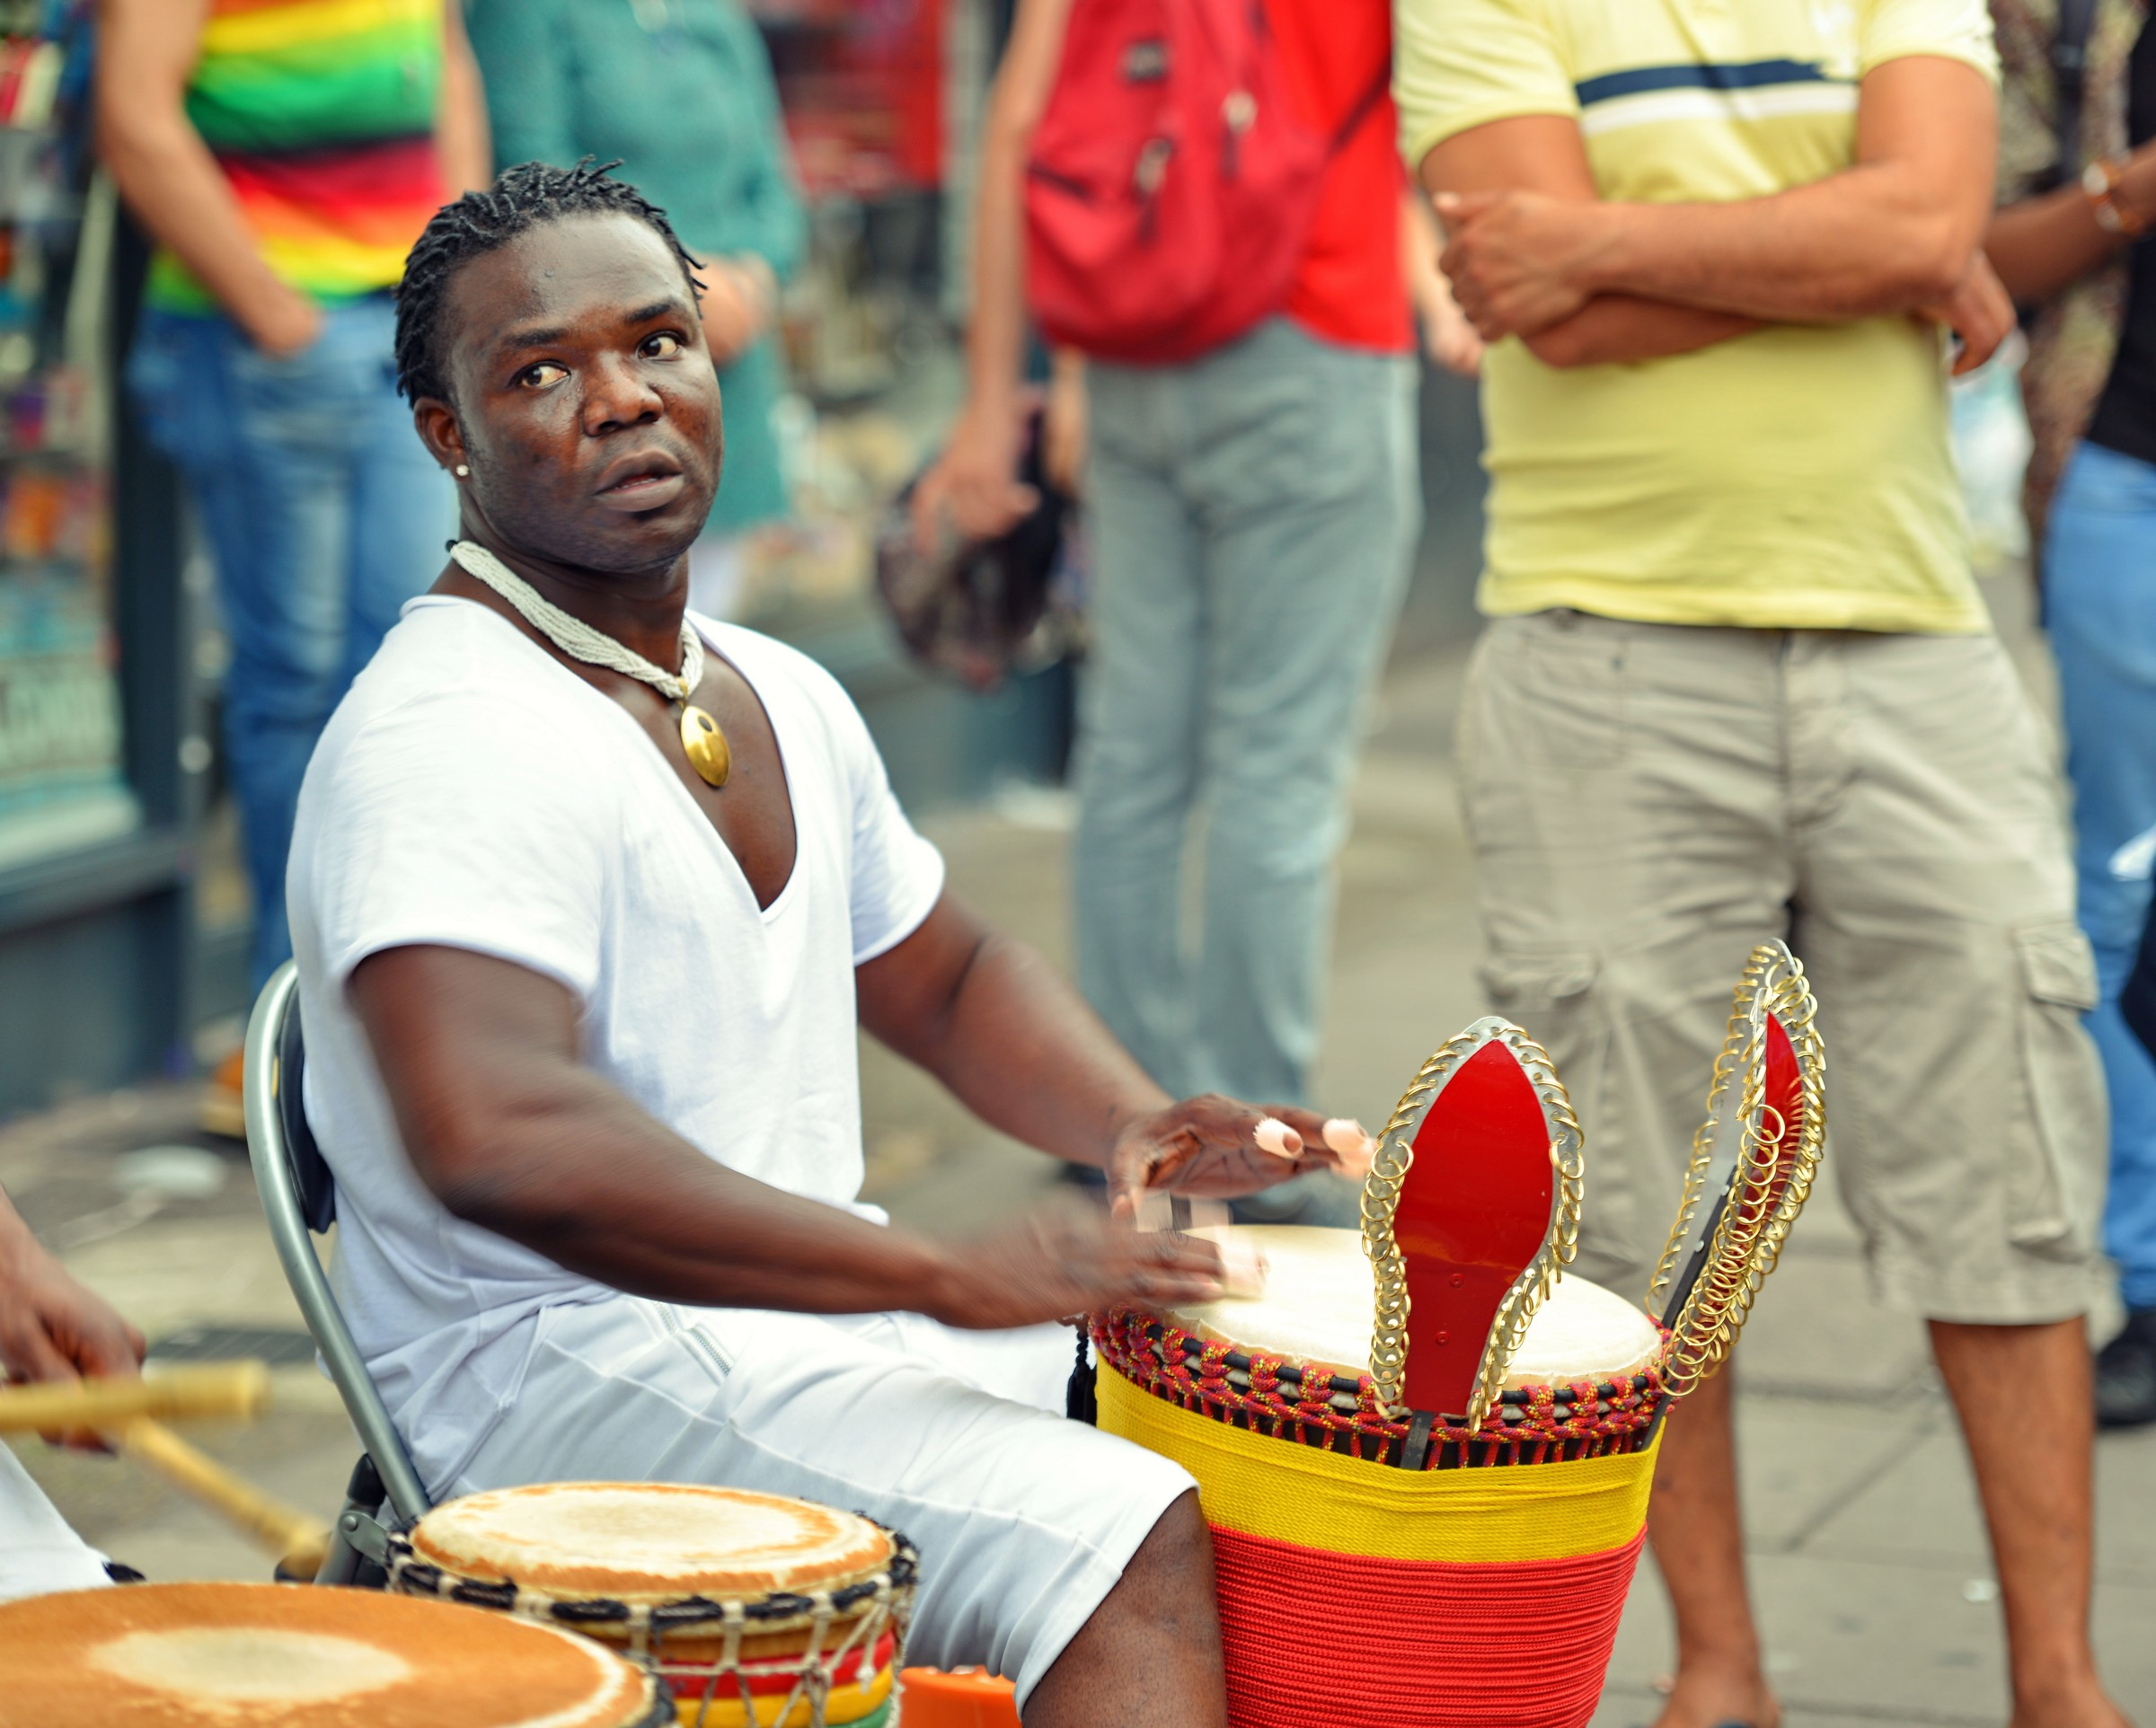 Drummer at Notting Hill Carnival London